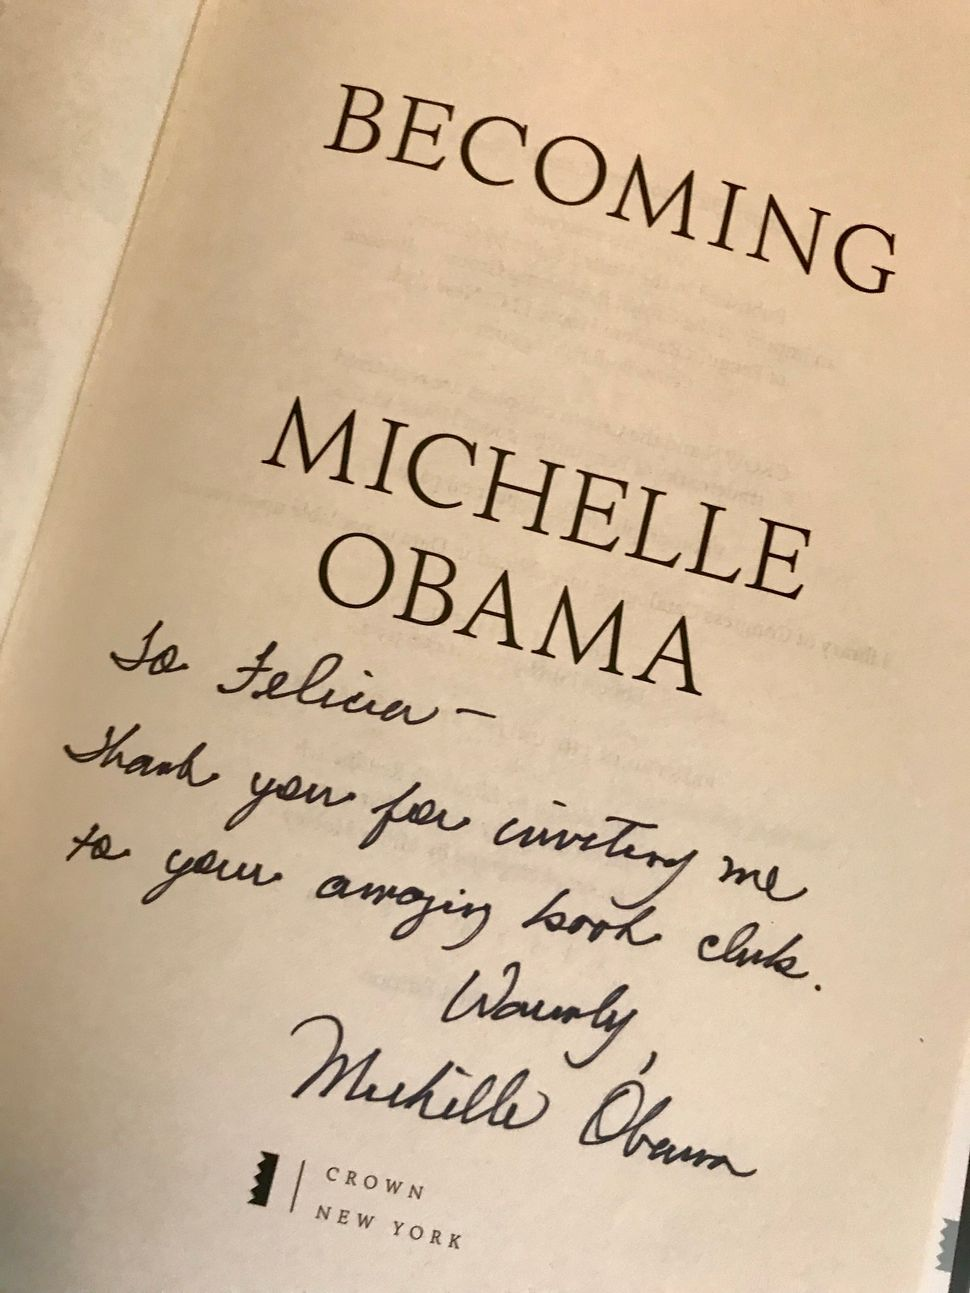 My copy of Becoming, complete with a personal note from Mrs. Obama.